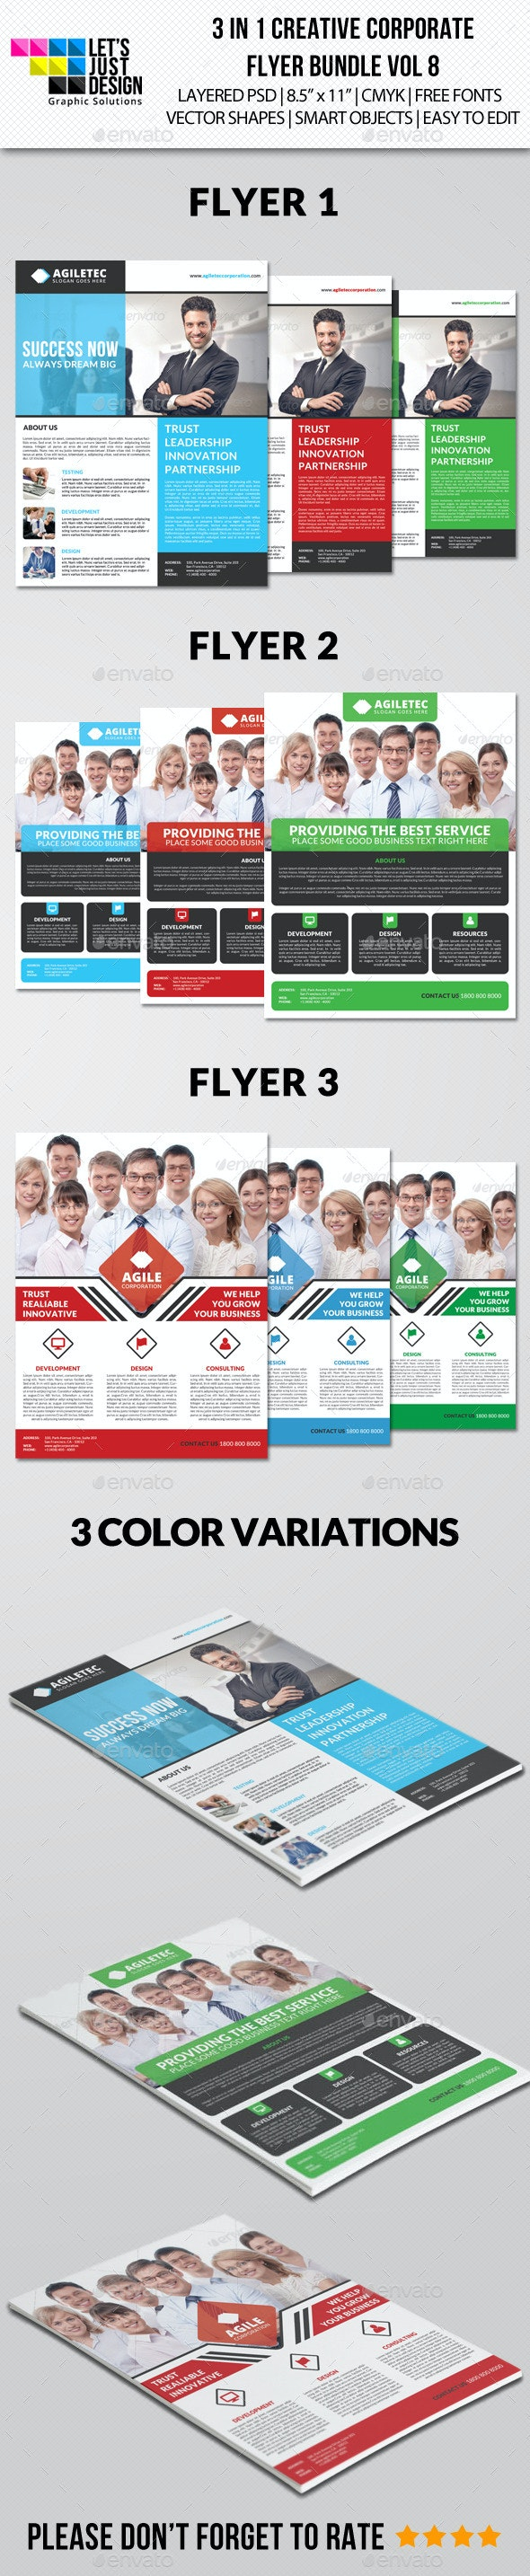 Creative Corporate Flyer Pack Vol 8 - Corporate Flyers